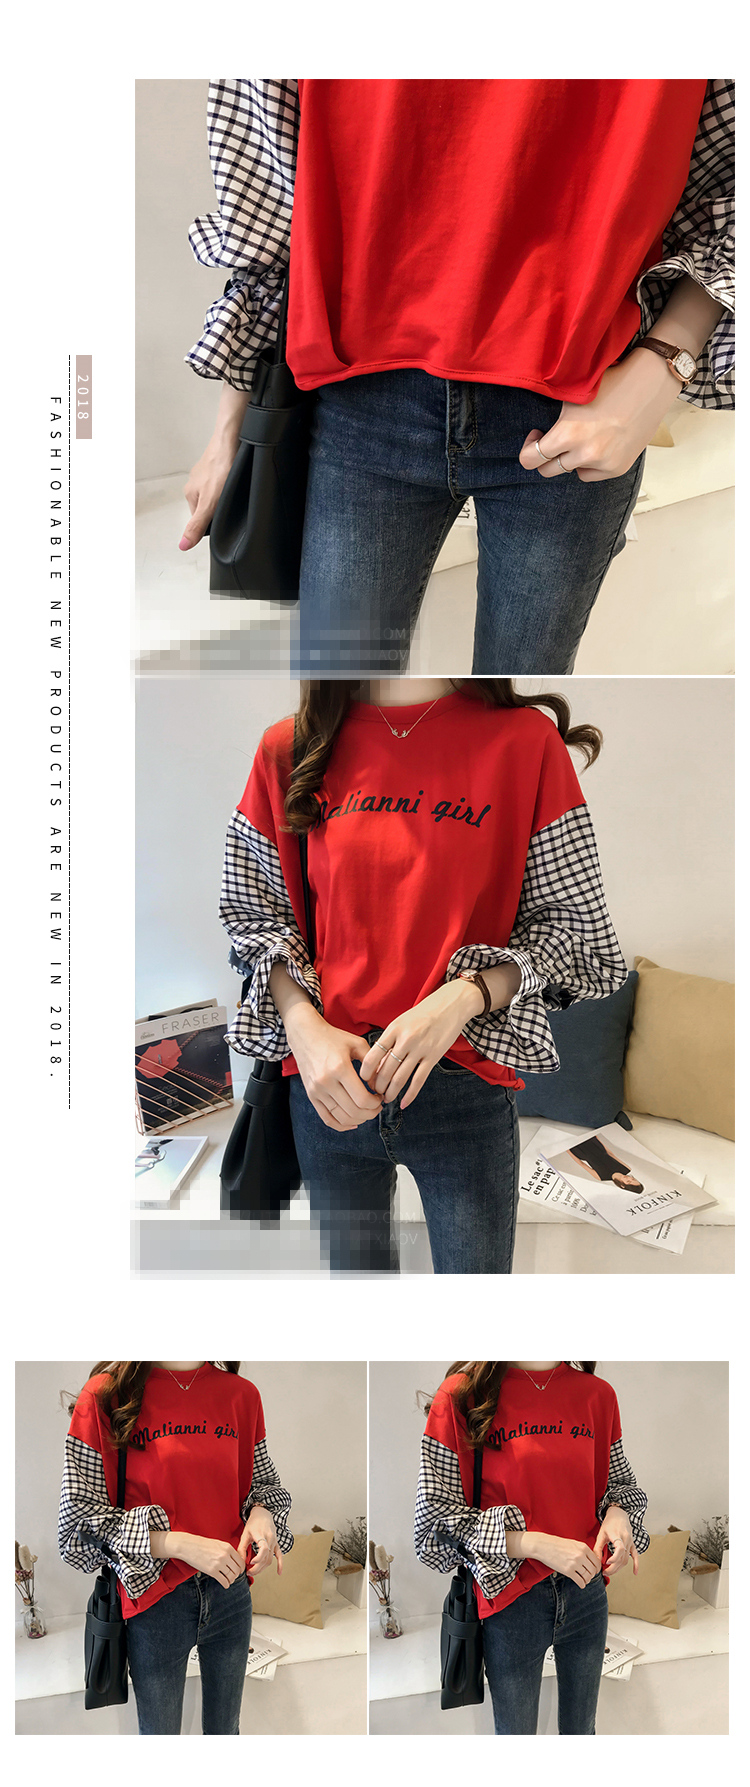 M-4xl Plus Size Cotton Casual T-shirts Women Plaid Patchwork Flare Sleeve O-neck Tshirts Harajuku Fake Two Piece Loose Tees Tops 12 Online shopping Bangladesh